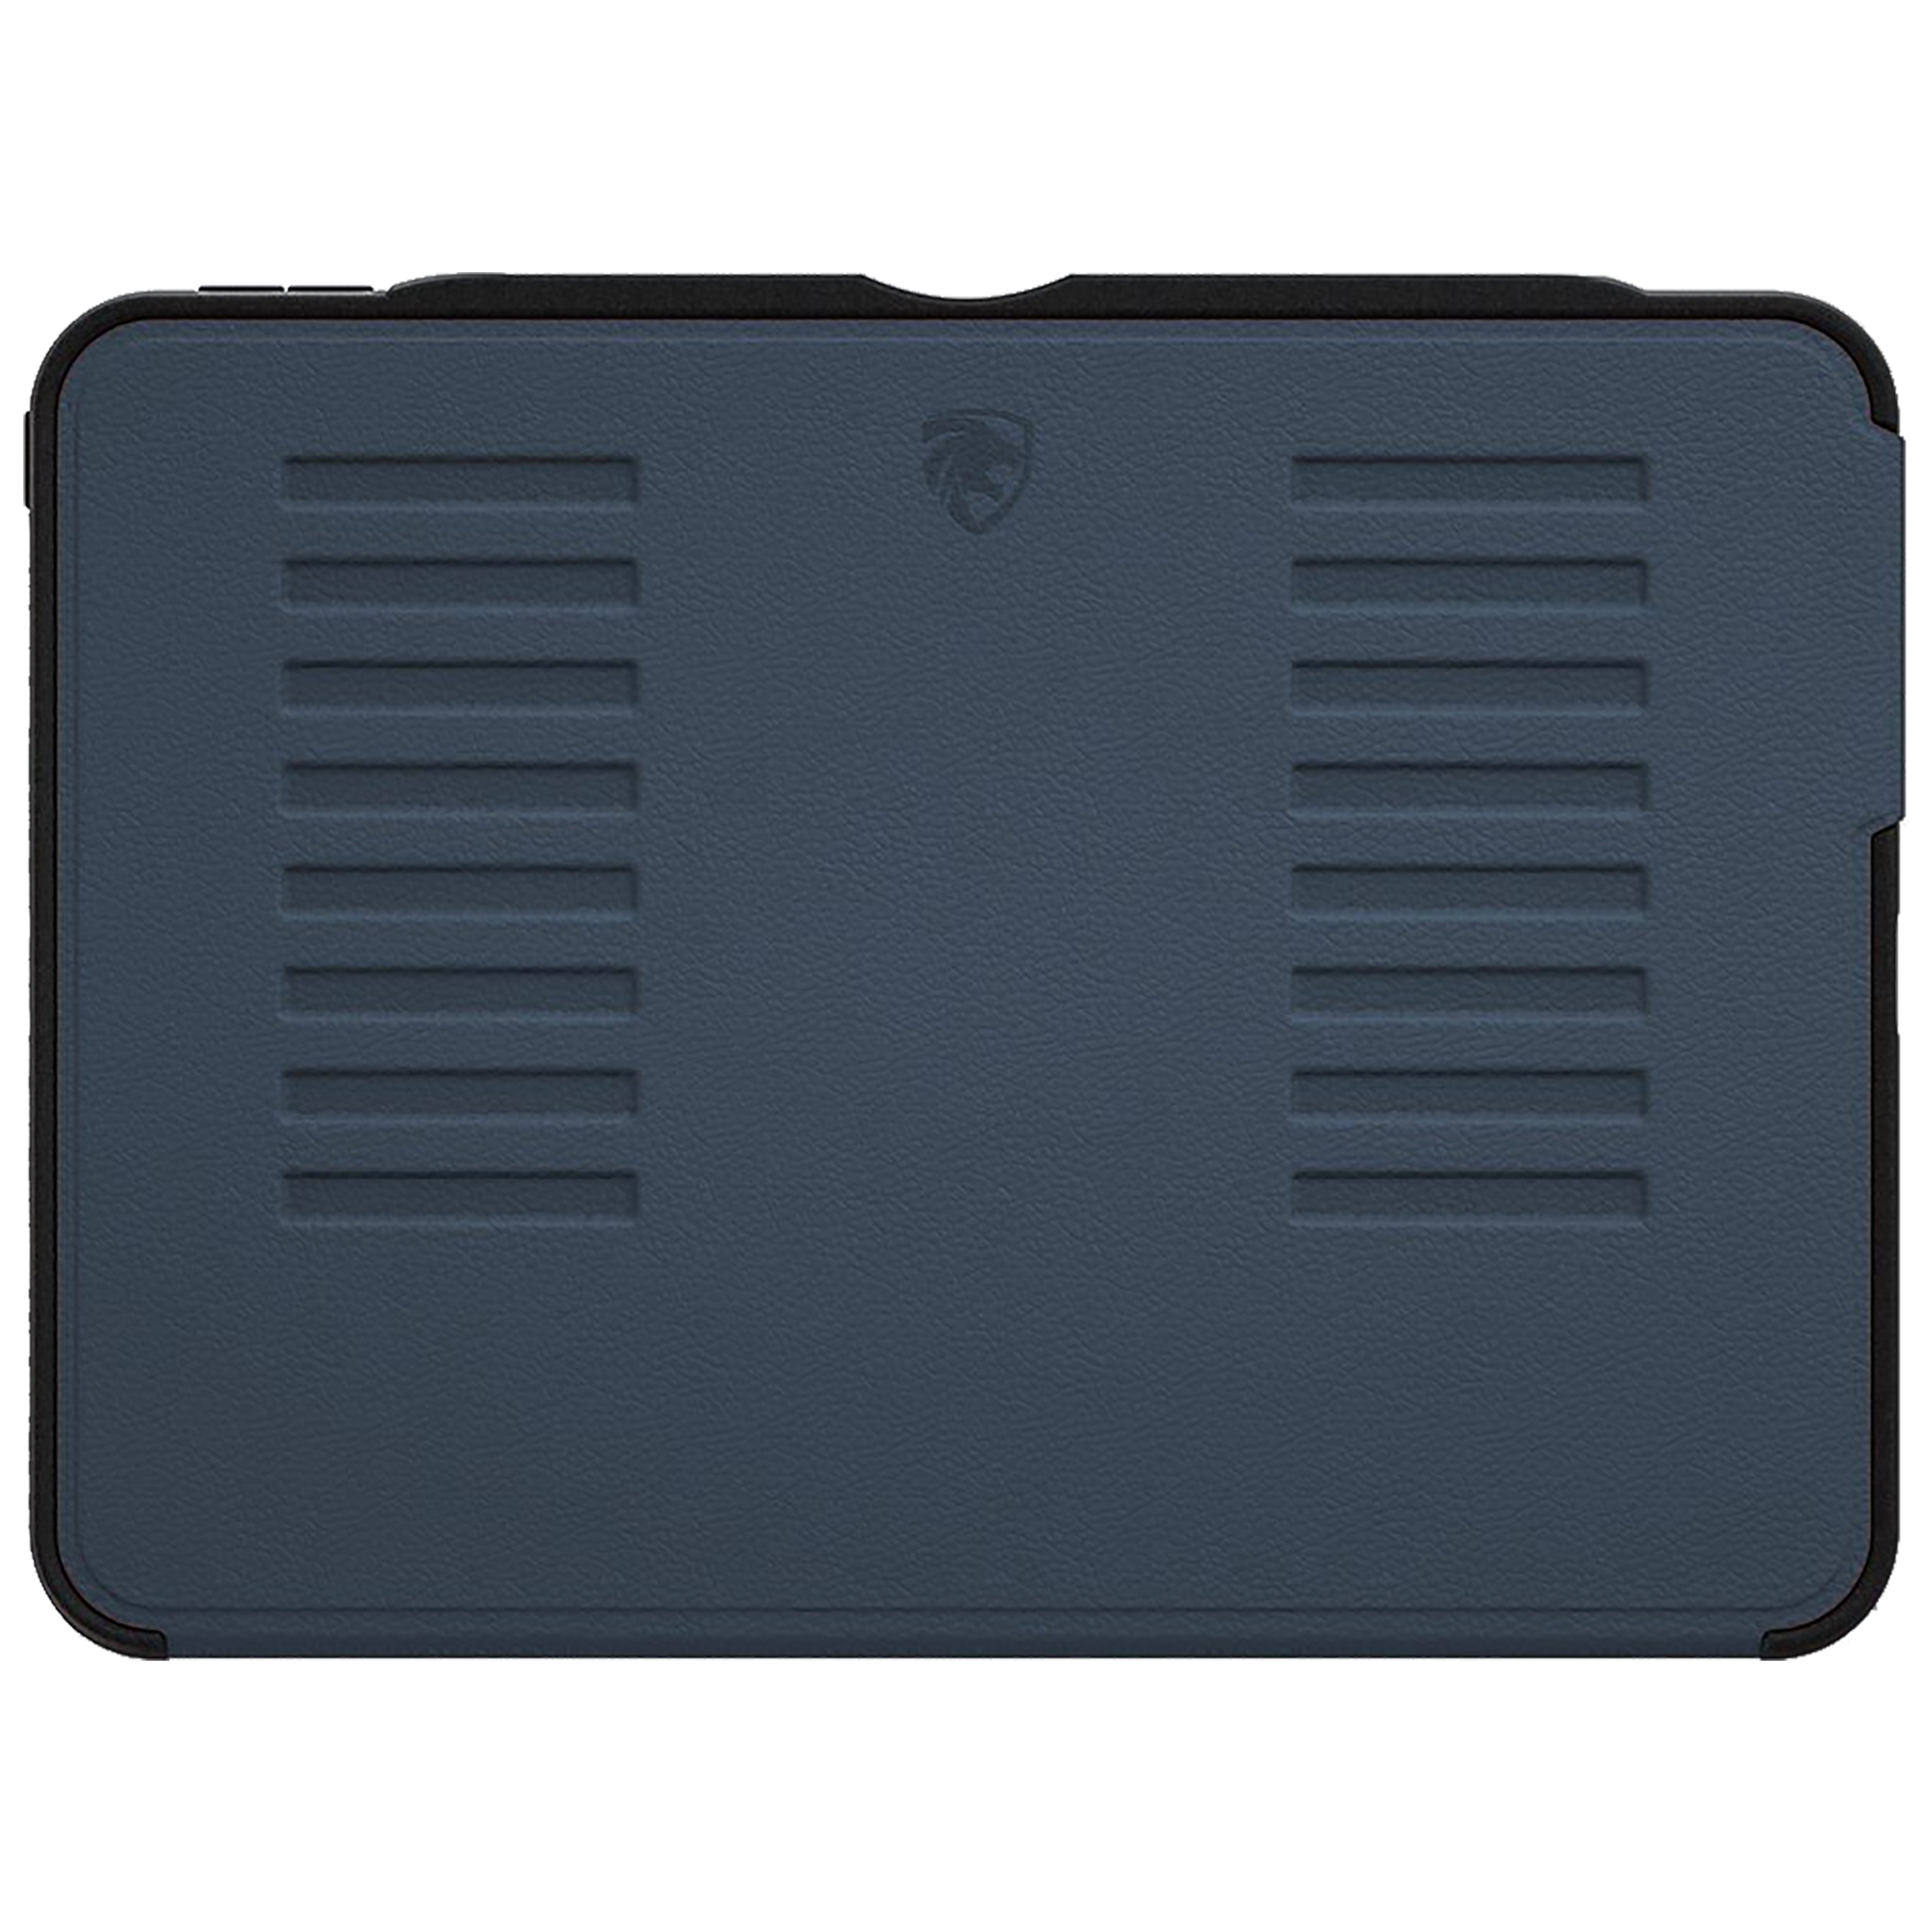 Zugu Alpha Polycarbonate Back Case with Stand For iPad Pro 12.9 (4th Gen) (Soft Microfiber Interior, ZG-20-129NB, Navy Blue)_1